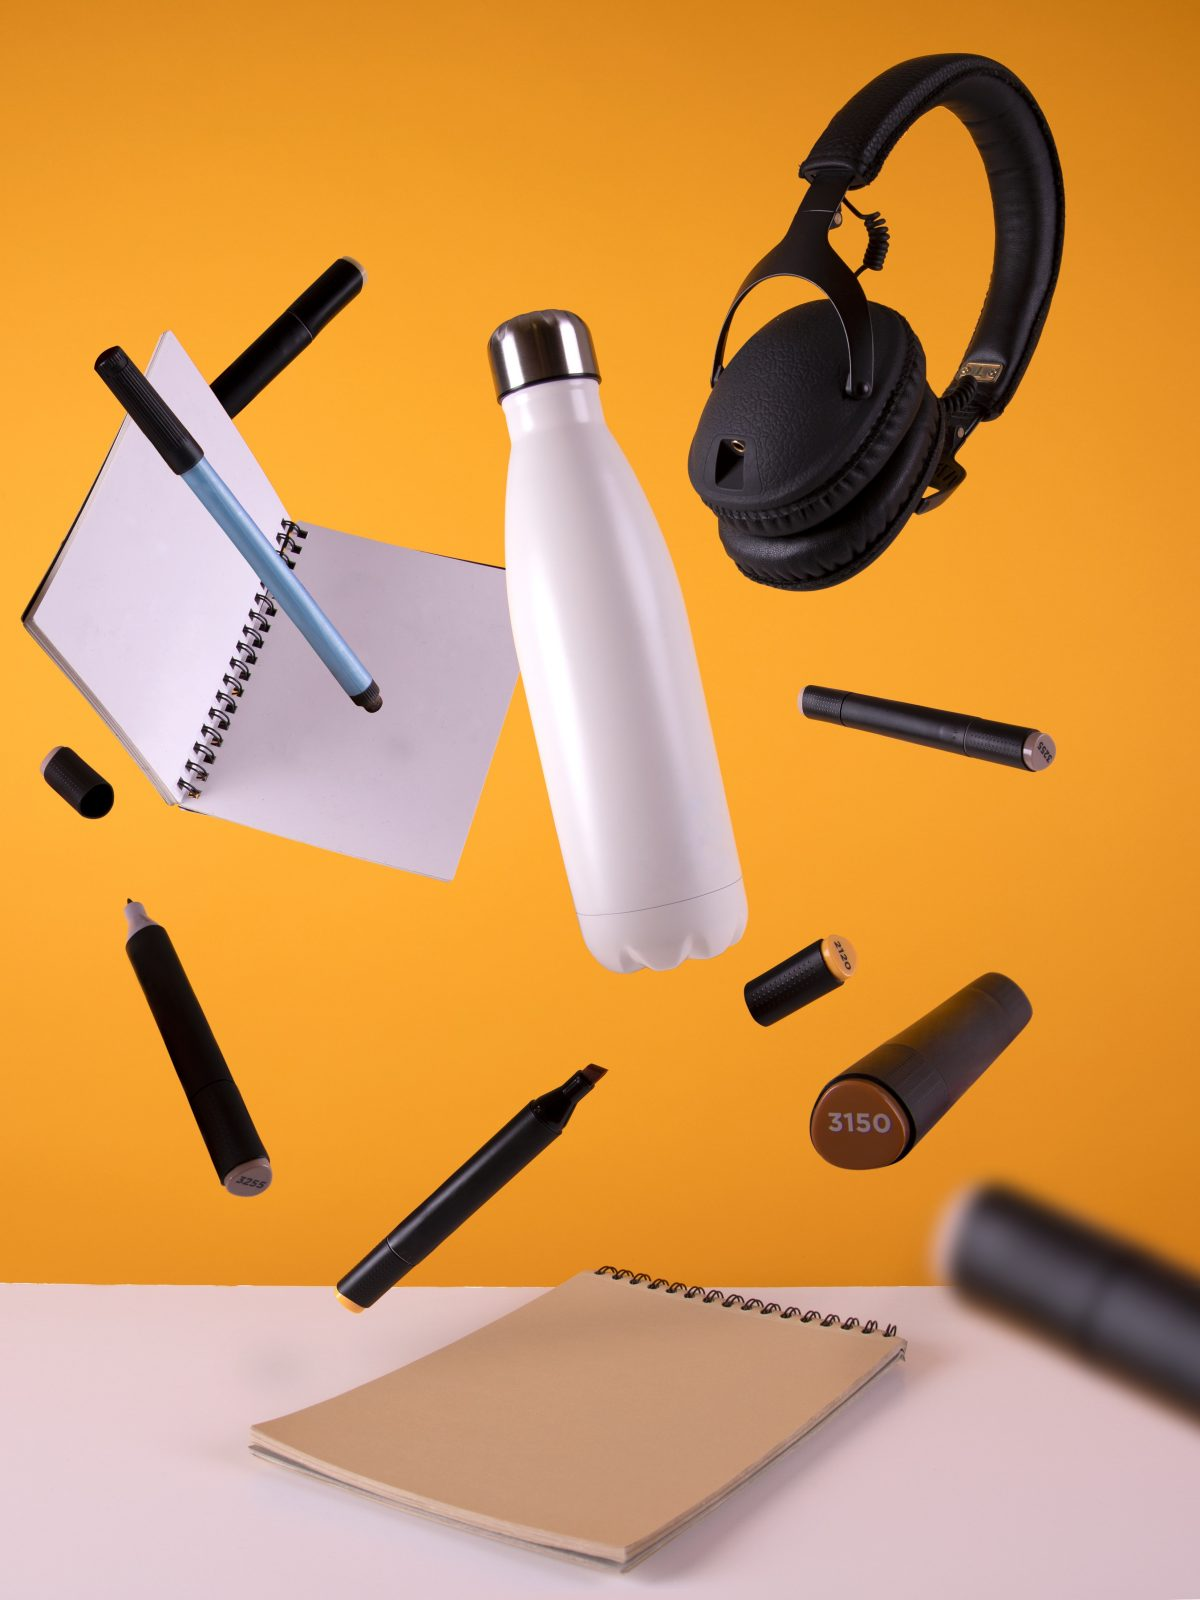 Why Stainless Steel Water Bottle Is Good For Travel